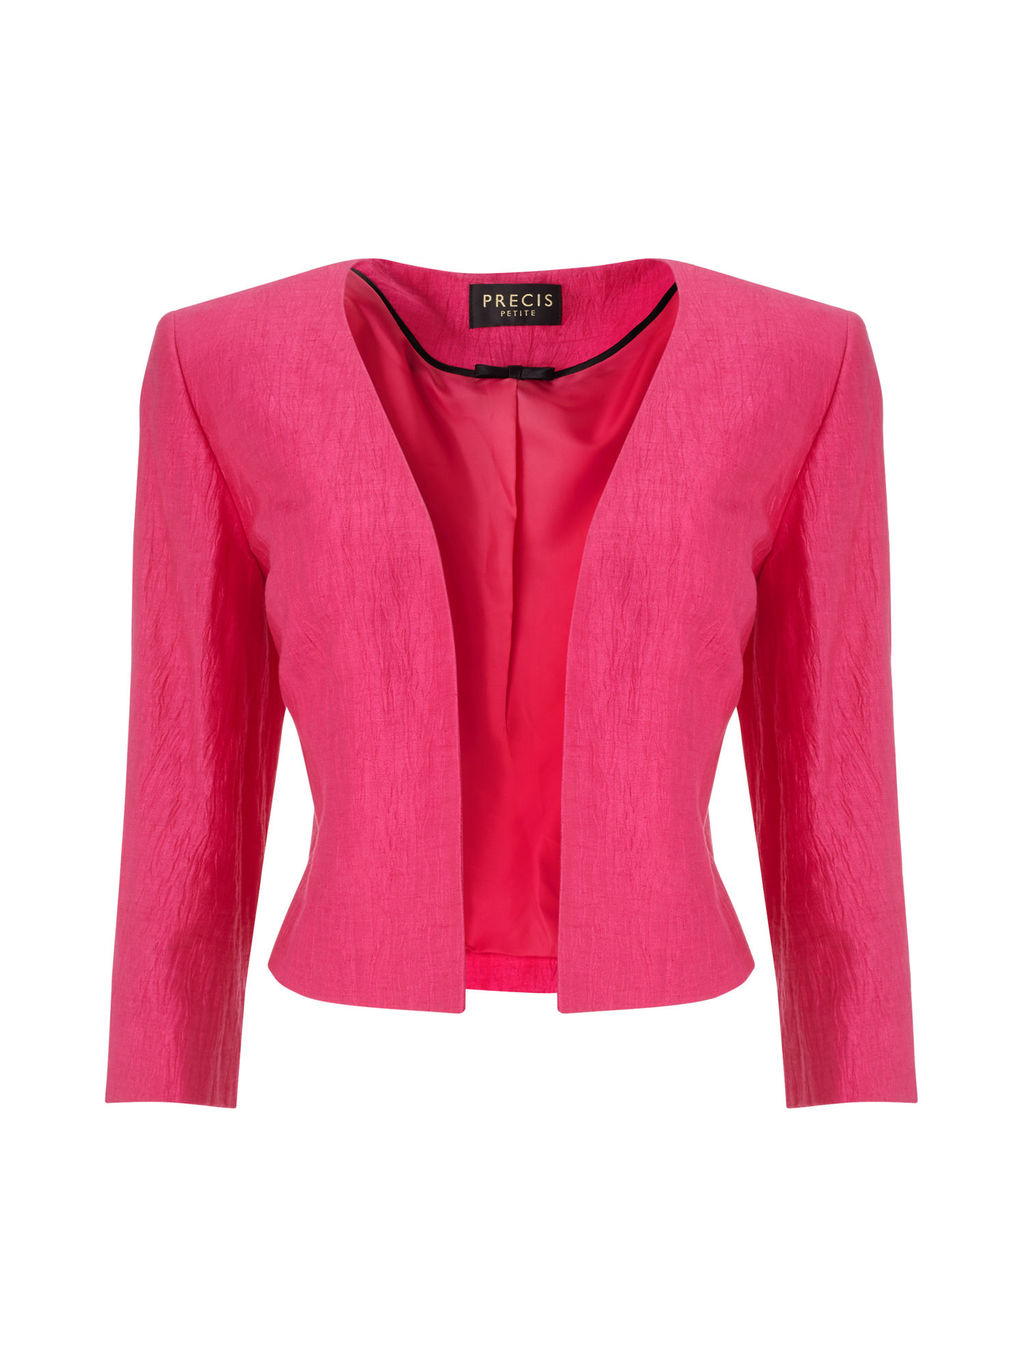 Edge To Edge Crinkle Jacket - pattern: plain; style: single breasted blazer; collar: round collar/collarless; predominant colour: hot pink; occasions: evening, occasion; length: standard; fit: tailored/fitted; fibres: linen - mix; sleeve length: 3/4 length; sleeve style: standard; collar break: low/open; pattern type: fabric; texture group: woven light midweight; season: s/s 2016; wardrobe: event